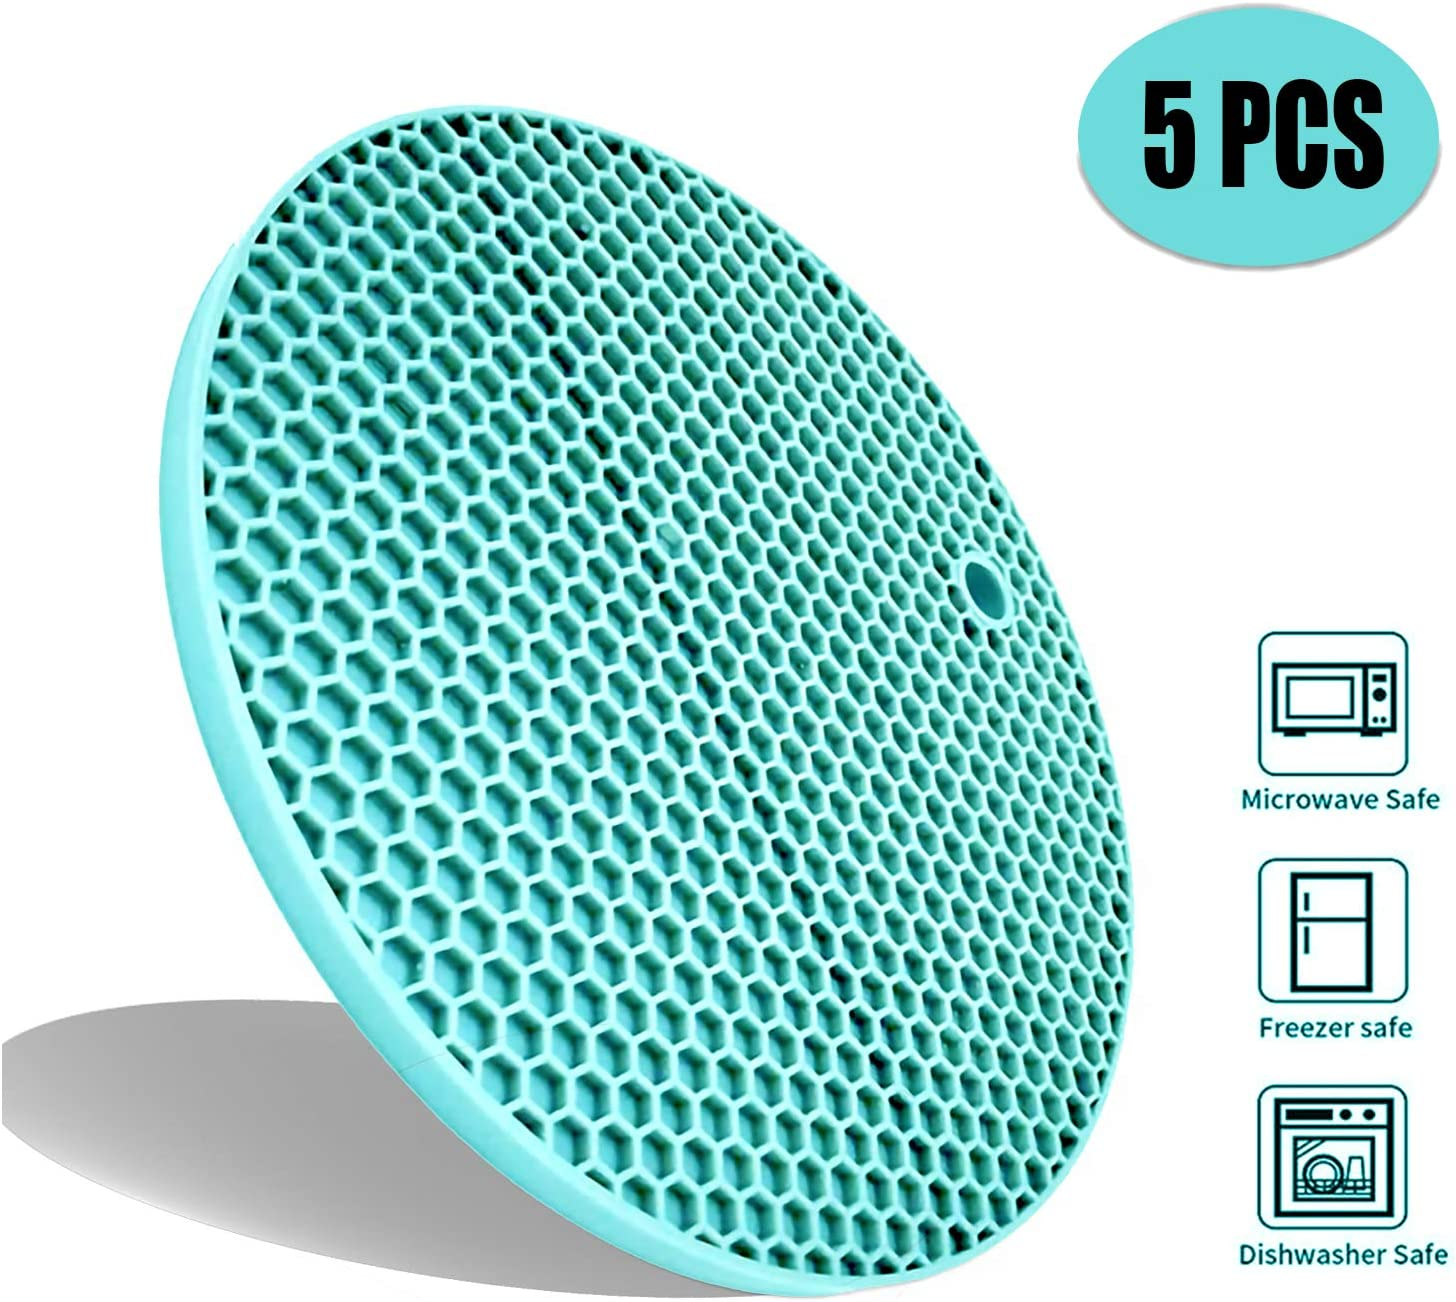 5Pcs Extra Thick Silicone Trivets Pot Holder and Oven Mitts,Trivets for Hot Dish,Nonslip Insulation Honeycomb Rubber Hot Pads for Countertop,Multi-Purpose,Flexible Mats Heat Resistant Potholders,Teal